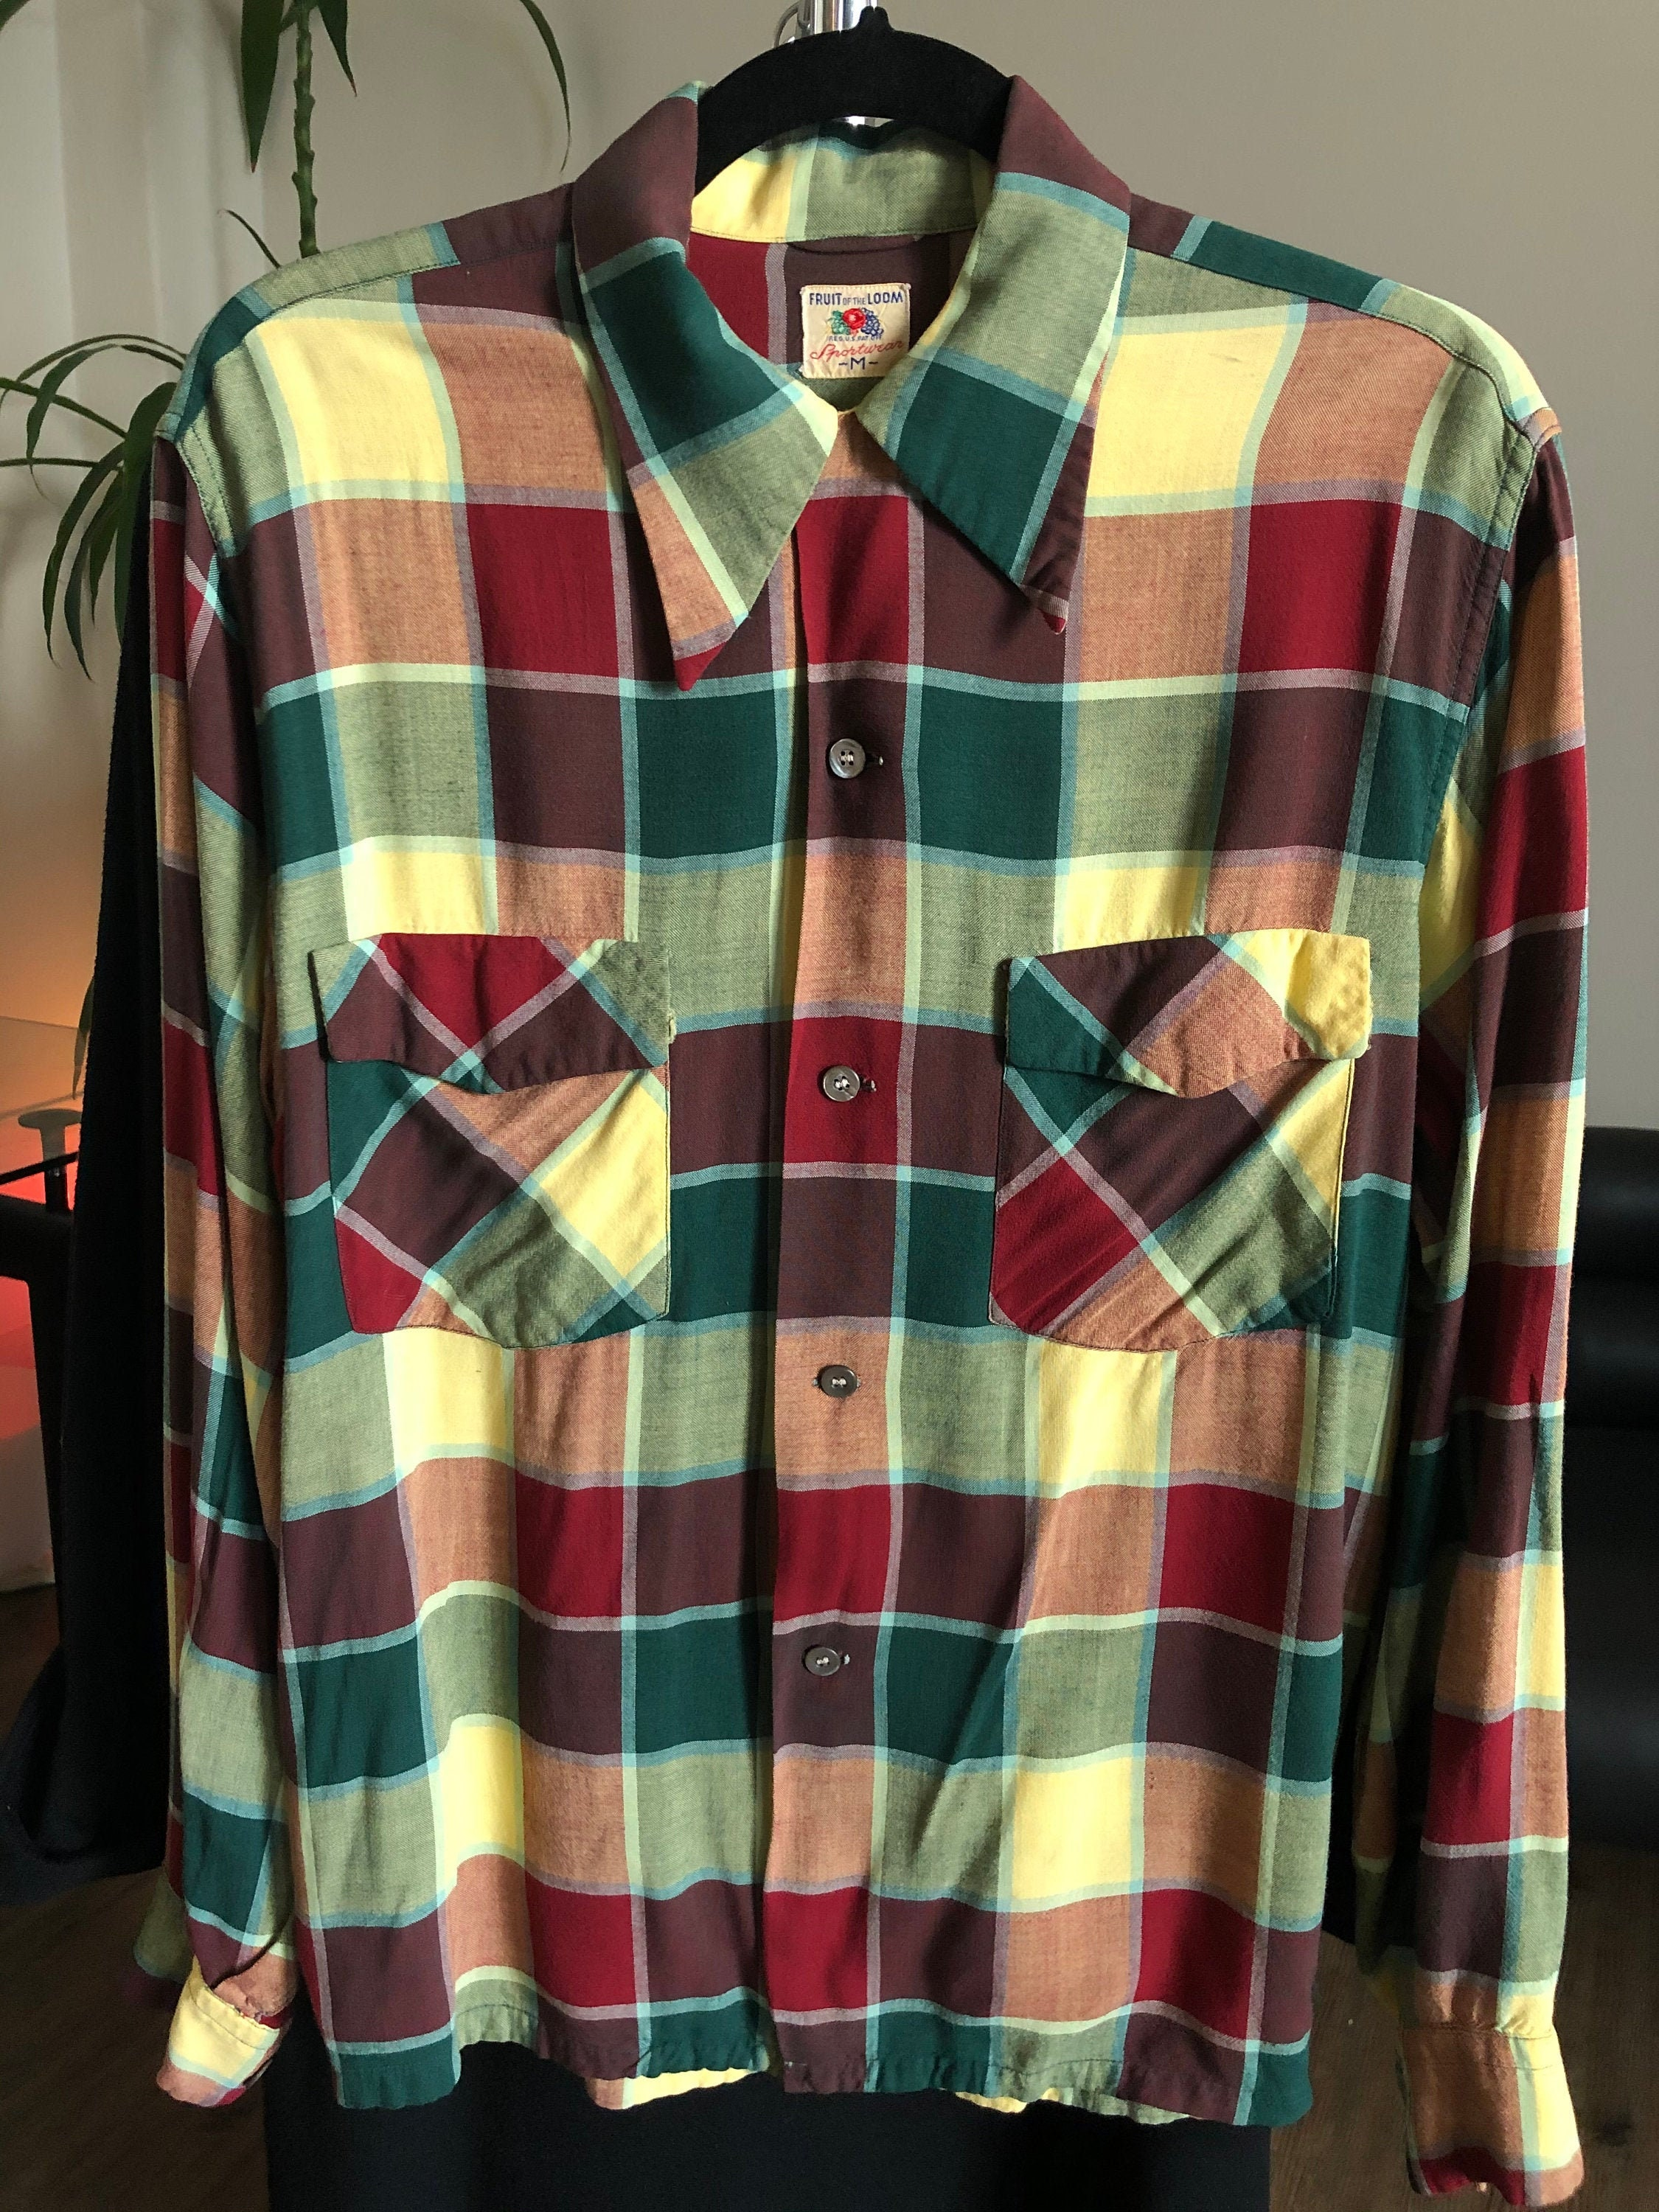 1940s Men's Shirts, Sweaters, Vests Vintage 1940s Fruit Of The Loom Sportswear Colorful Checker Button Up Long Sleeve Shirt $0.00 AT vintagedancer.com